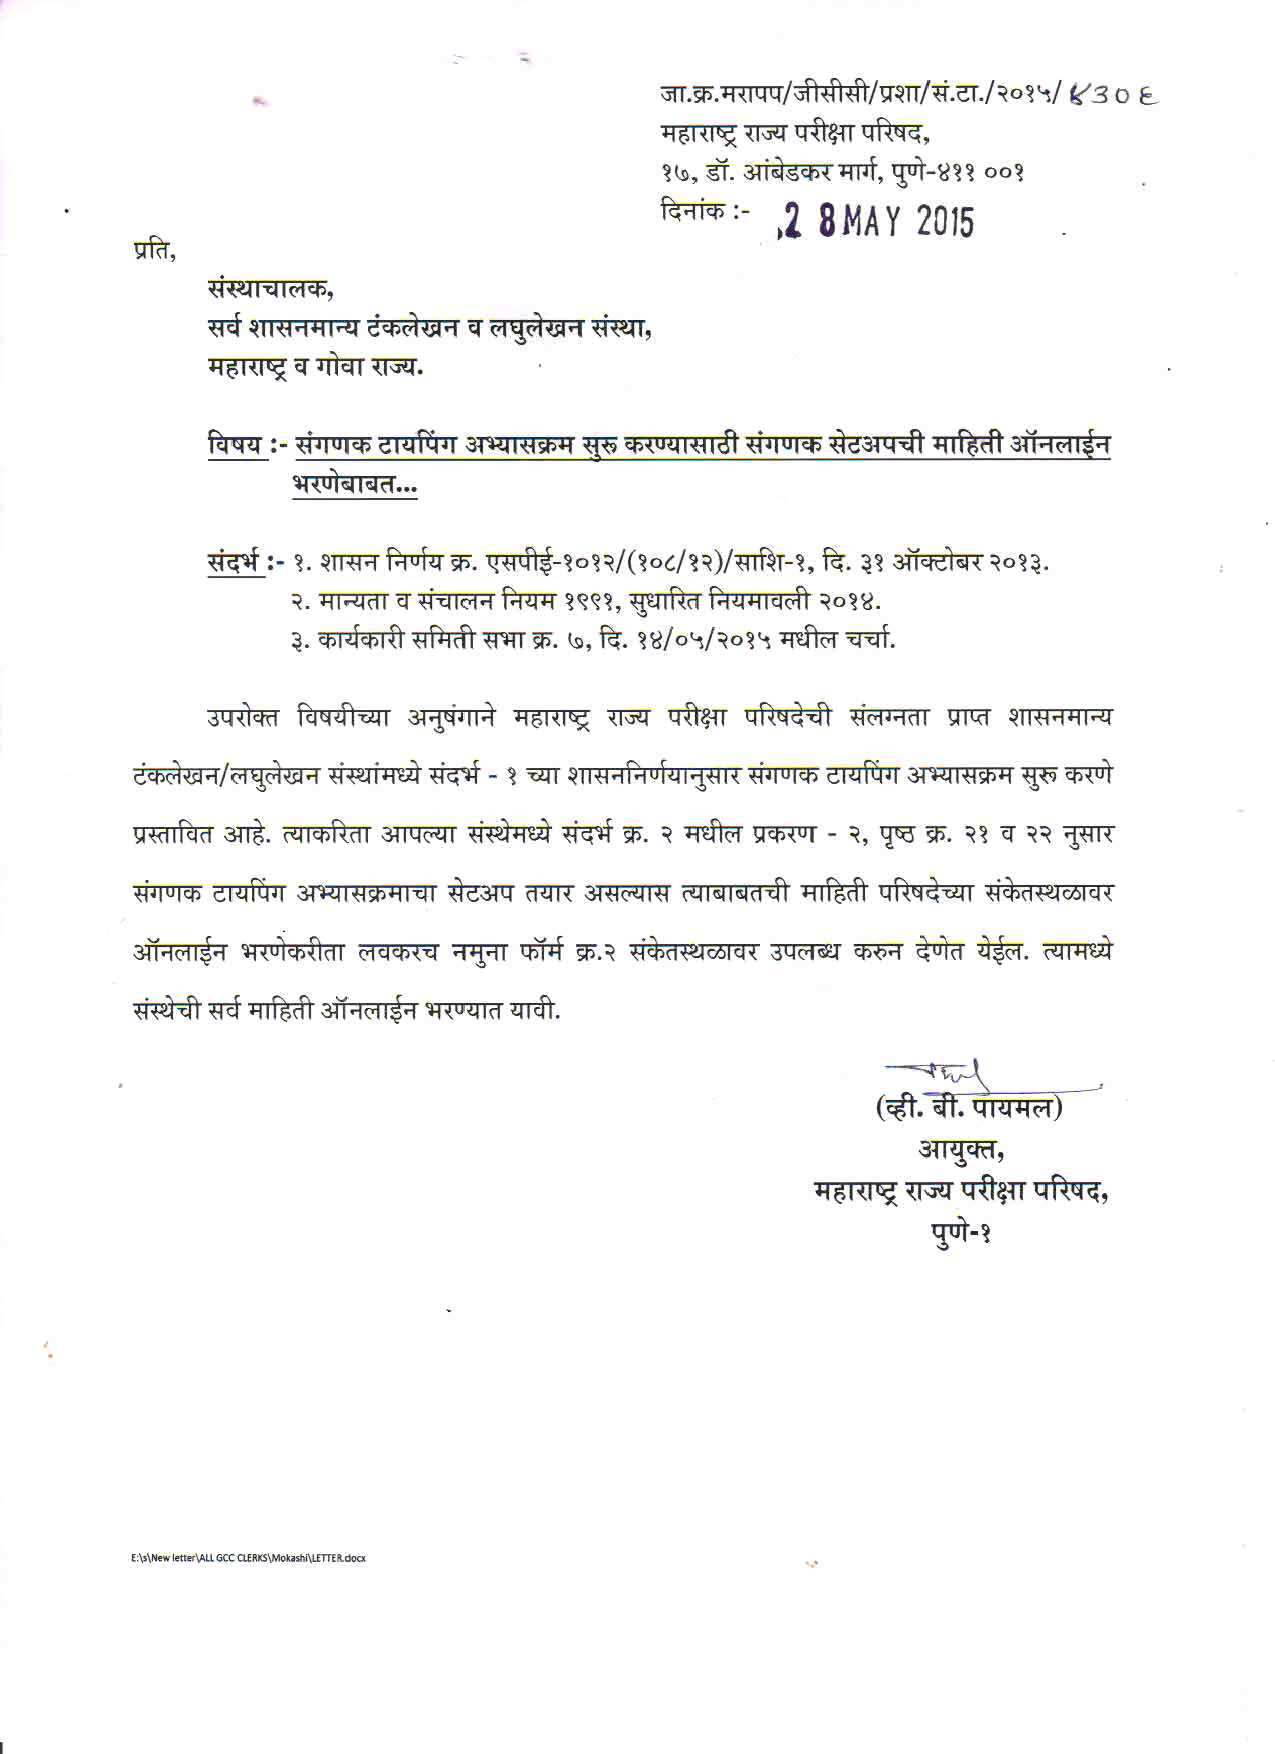 Maharashtra State Council of Examination